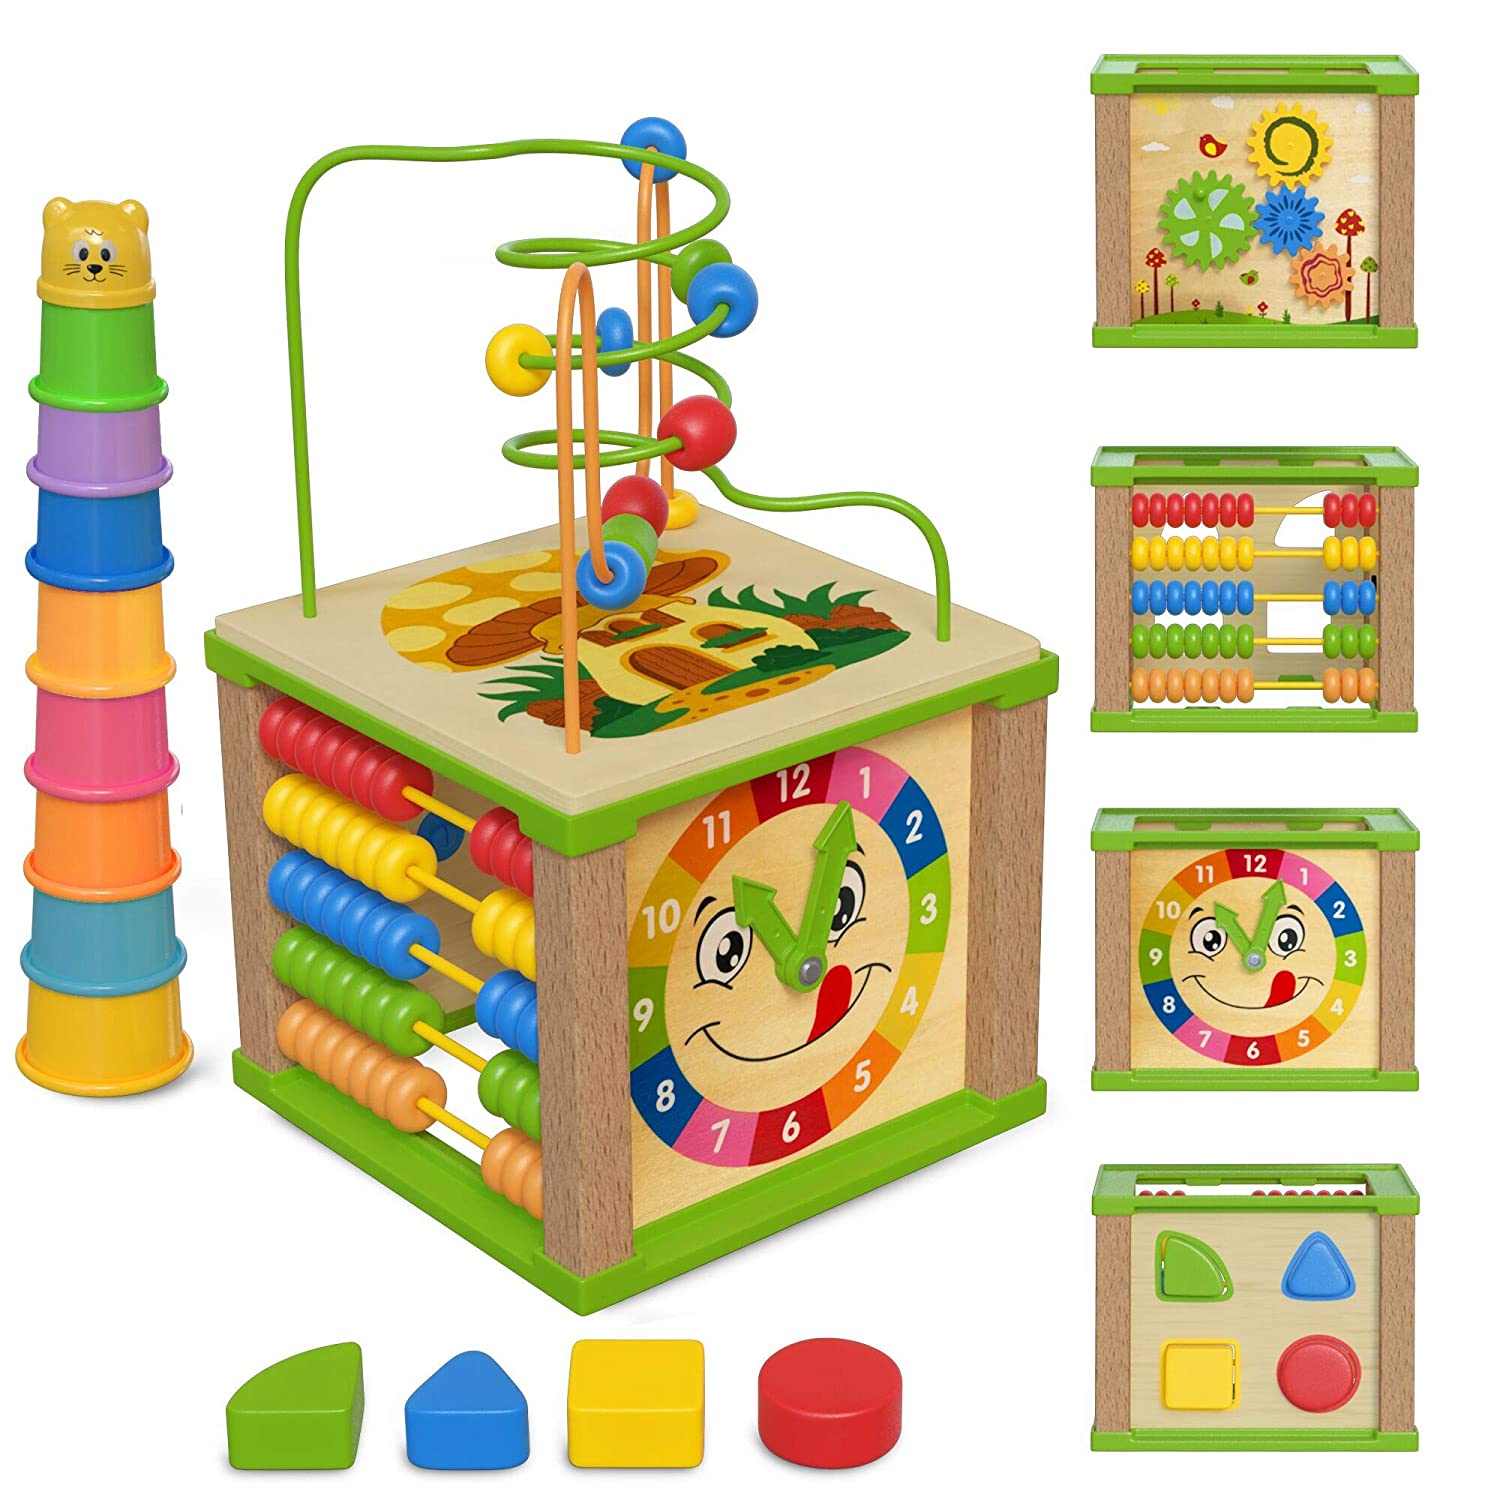 Spunky Kinder Wooden Kids Baby Activity Cube - Boys Gift Set   One 1, 2 Year Old Boy Gifts Toys   Developmental Toddler Educational Wooden Baby Learning Boy Toys 12-18 Months   Bead Maze (Blue Box)